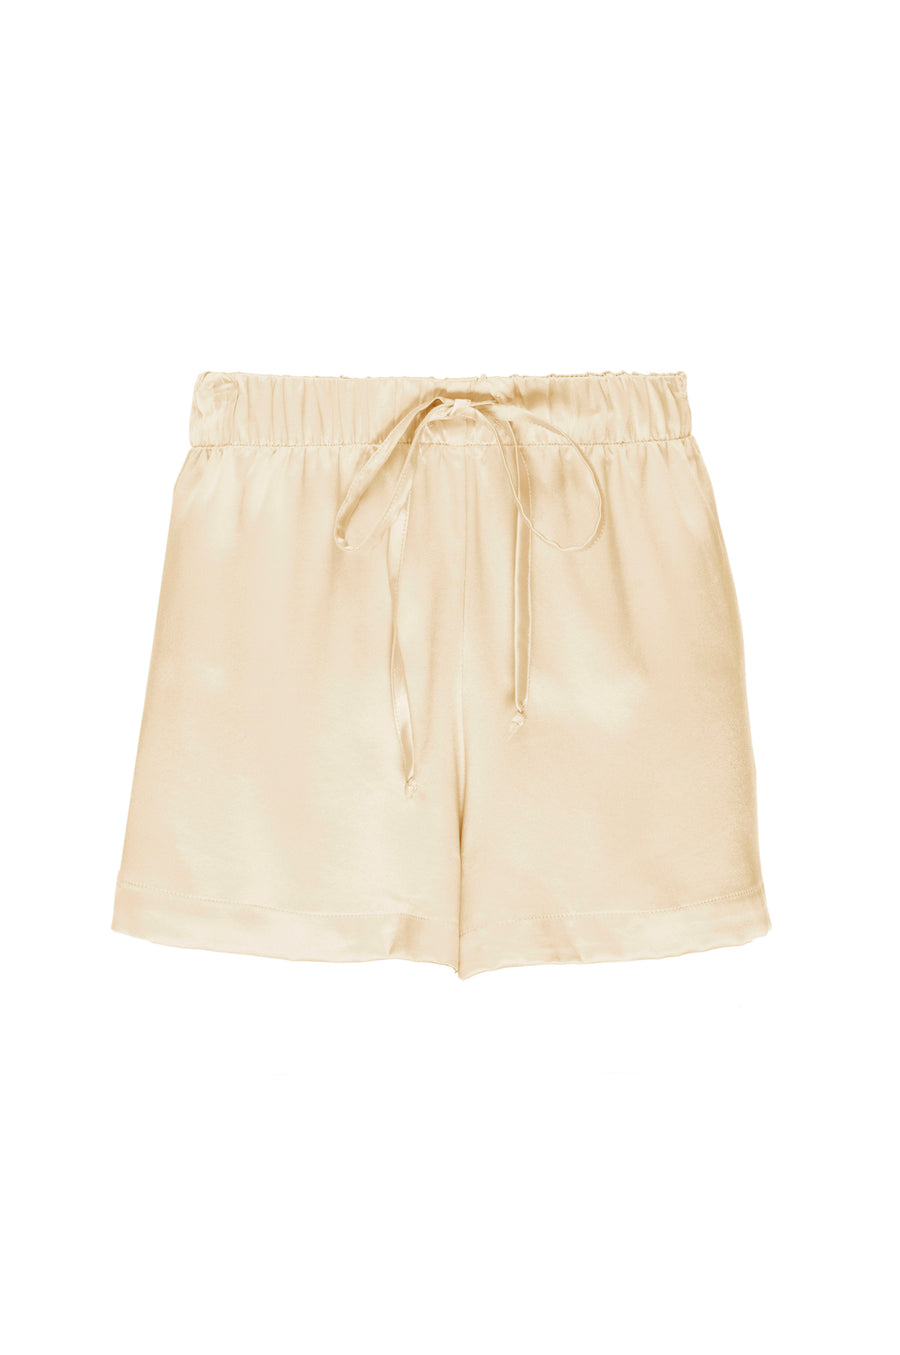 Silk Charmeuse Shorts: Butter Yellow